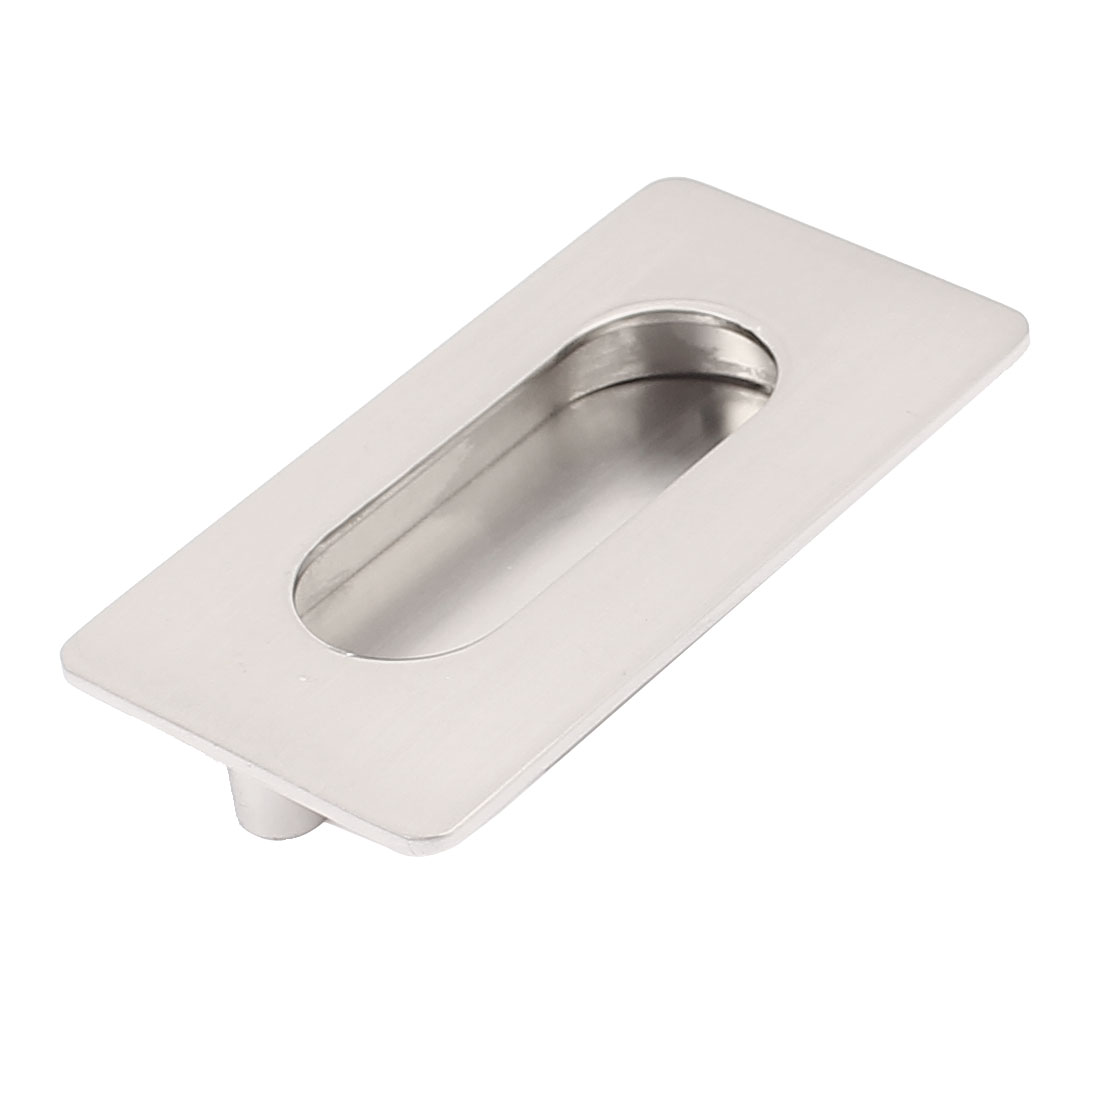 70mmx28mm Furniture Fittings Cabinet Rectangle Shape Flush Pull Handle